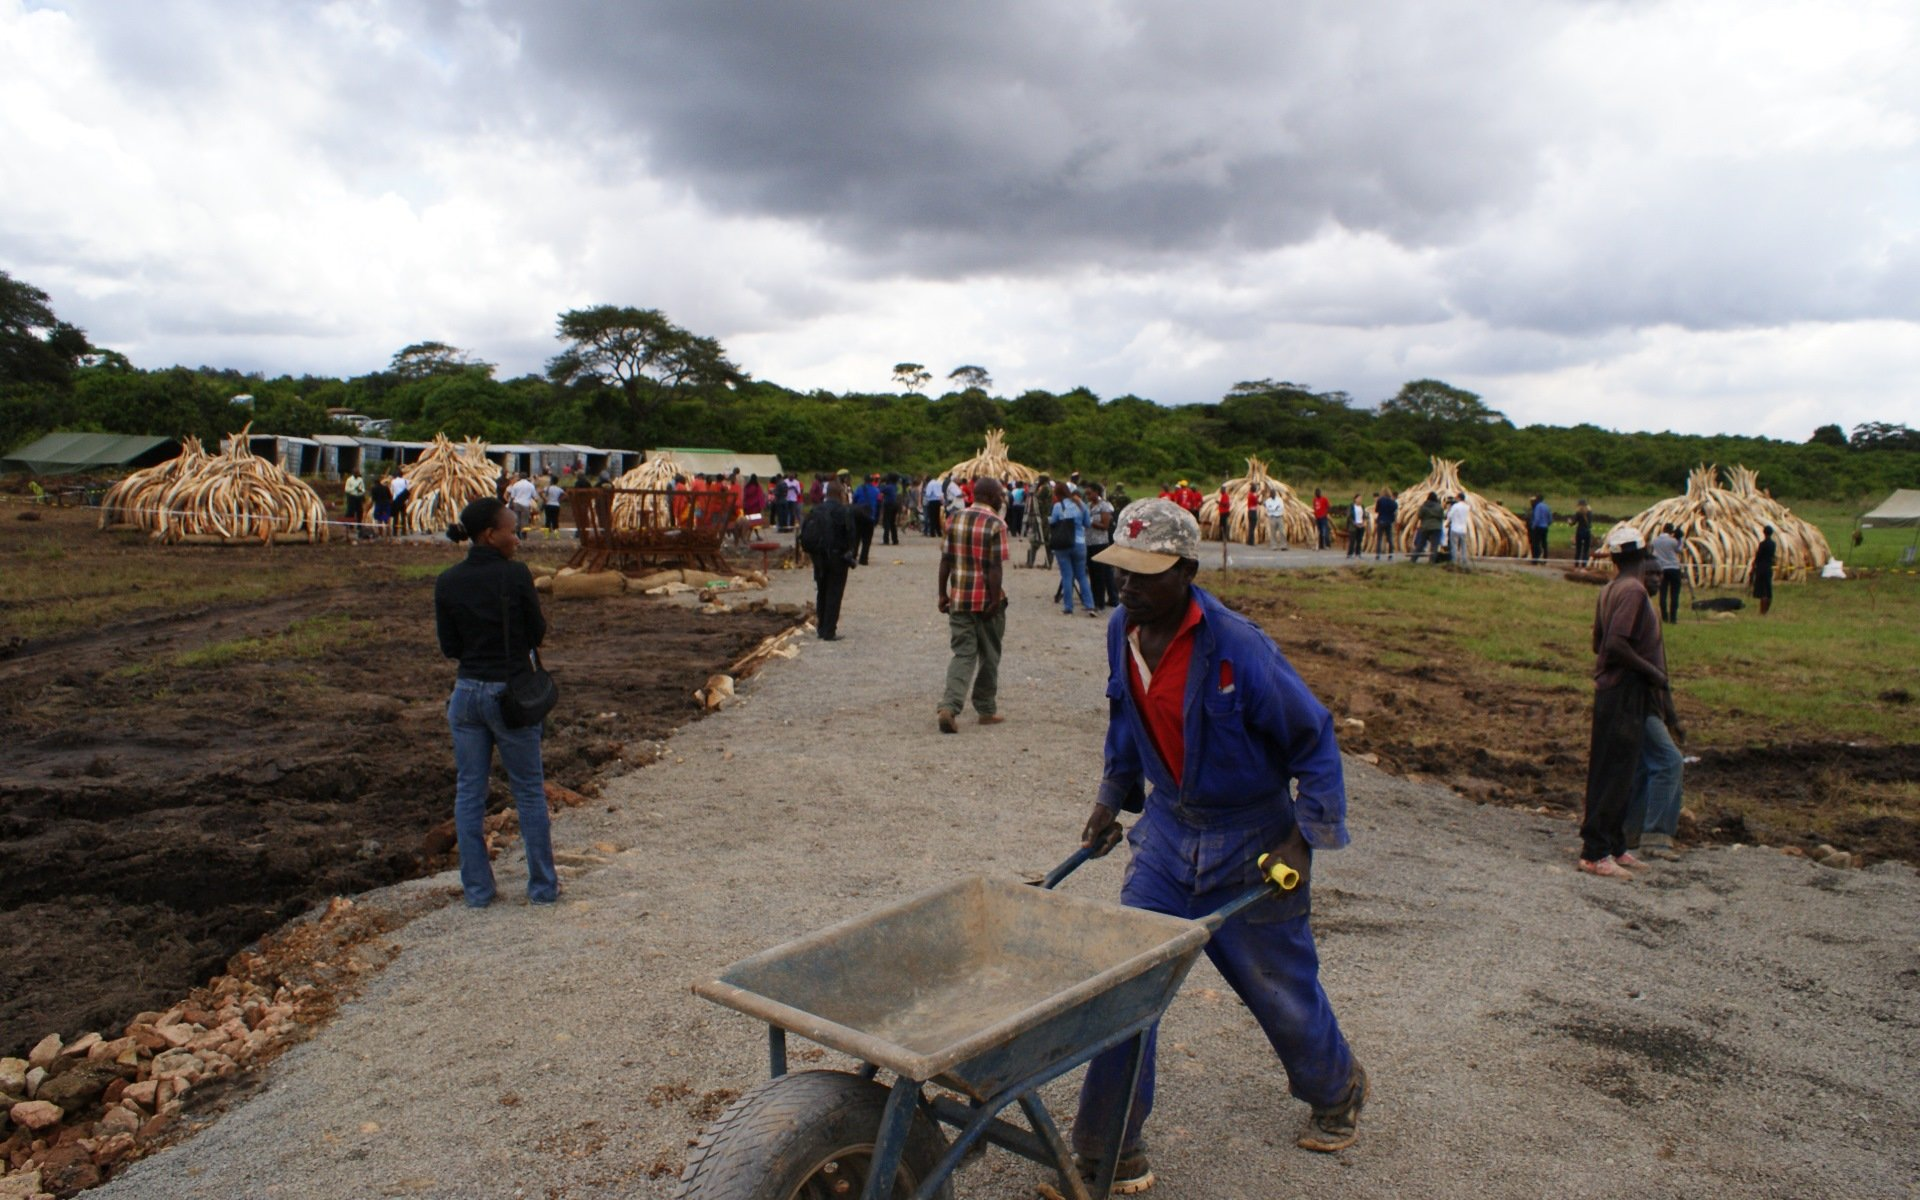 It took KWS personnel working round the clock 10 days to build the towers.